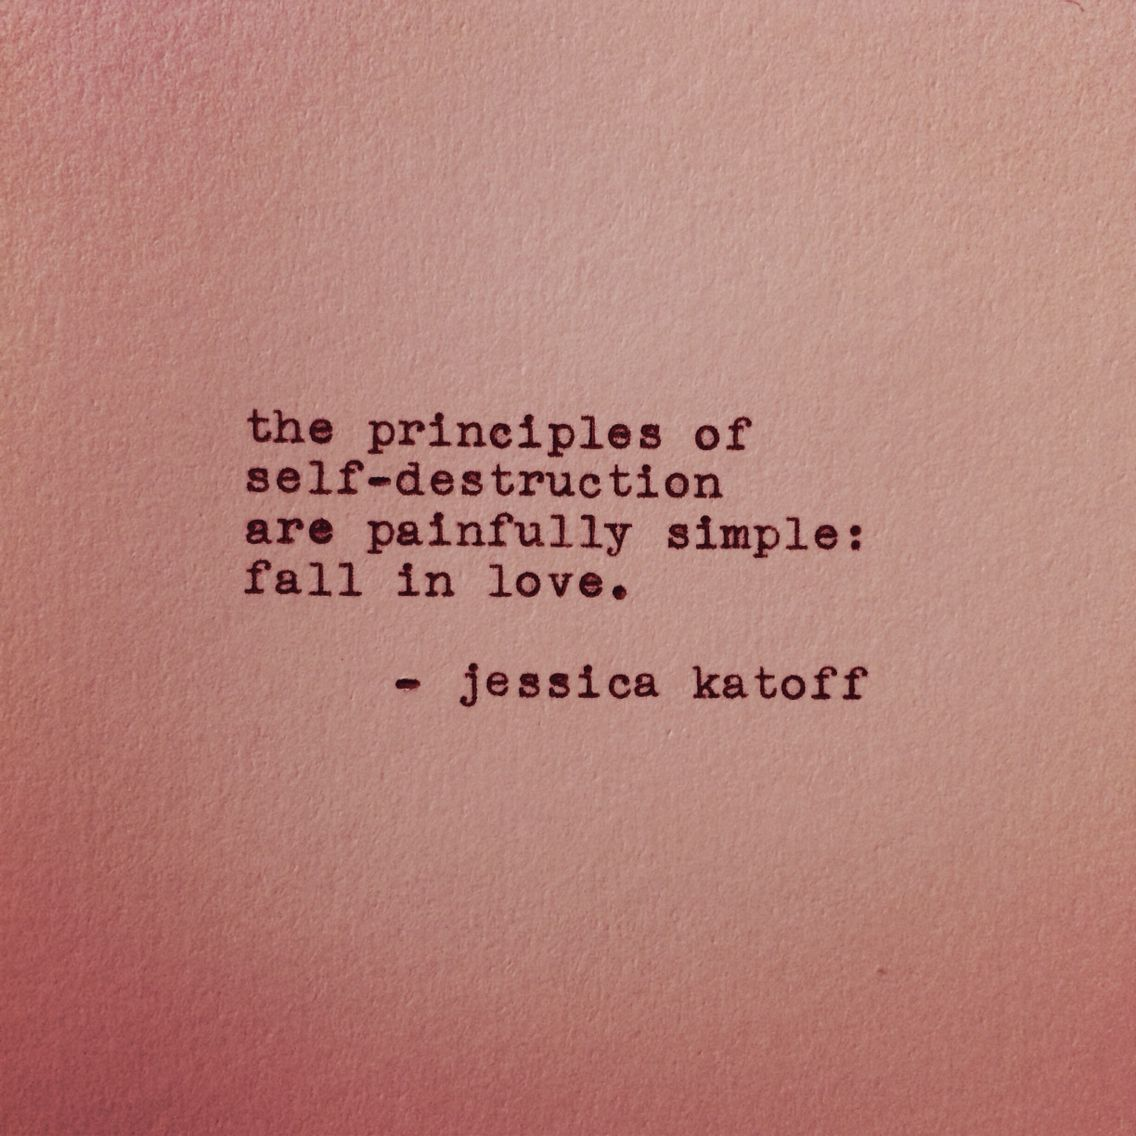 Pin By Jessica Katoff On Poems Poetry Quotes Life